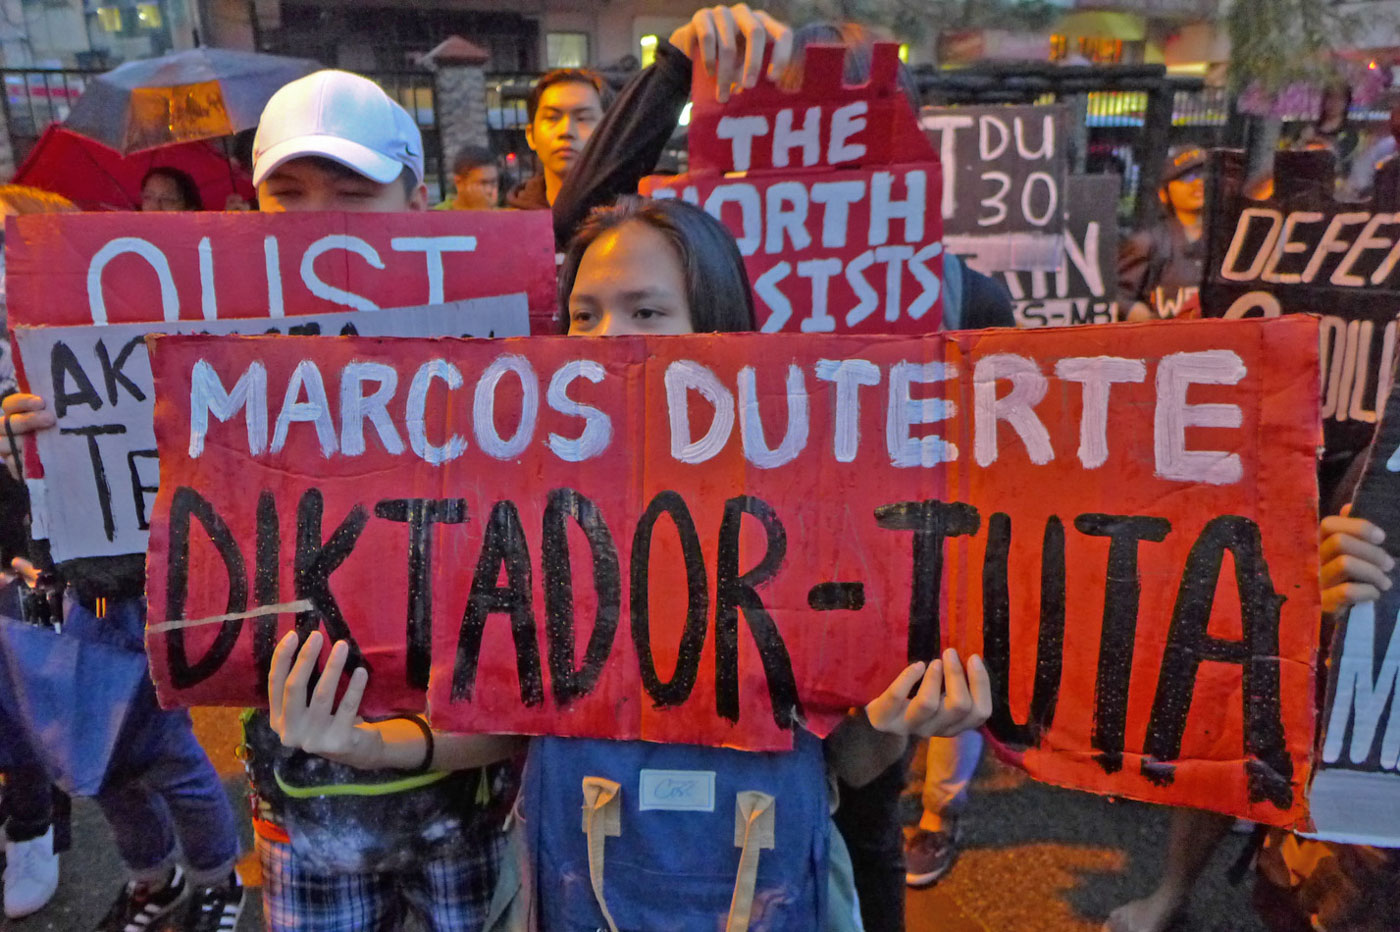 STUDENT PROTESTERS. Demonstrators, mostly students, called for the ouster of President Rodrigo Duterte as Baguio joined on September 21, 2018, the observance of the declaration of Martial Law. Photo by Mau Victa/Rappler